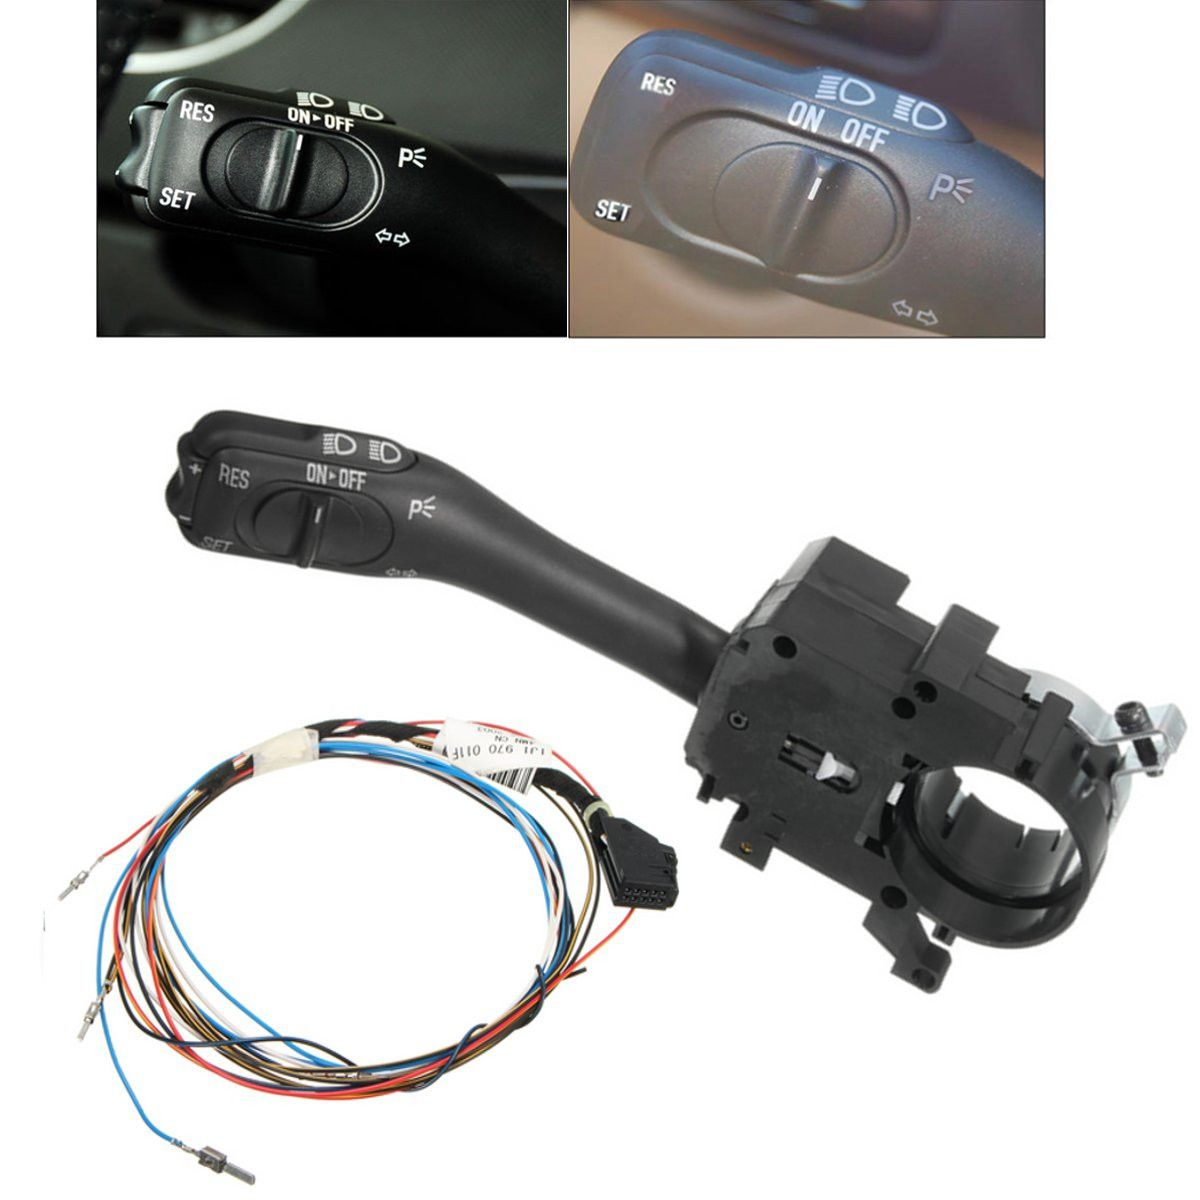 New Cruise Control System Indicator Stalk Switch Amp Harness Wire For Vw Golf Gti Bora Mk4 18g 953 513 A 1j1 970 011 F Cruise Control Golf Gti Control System